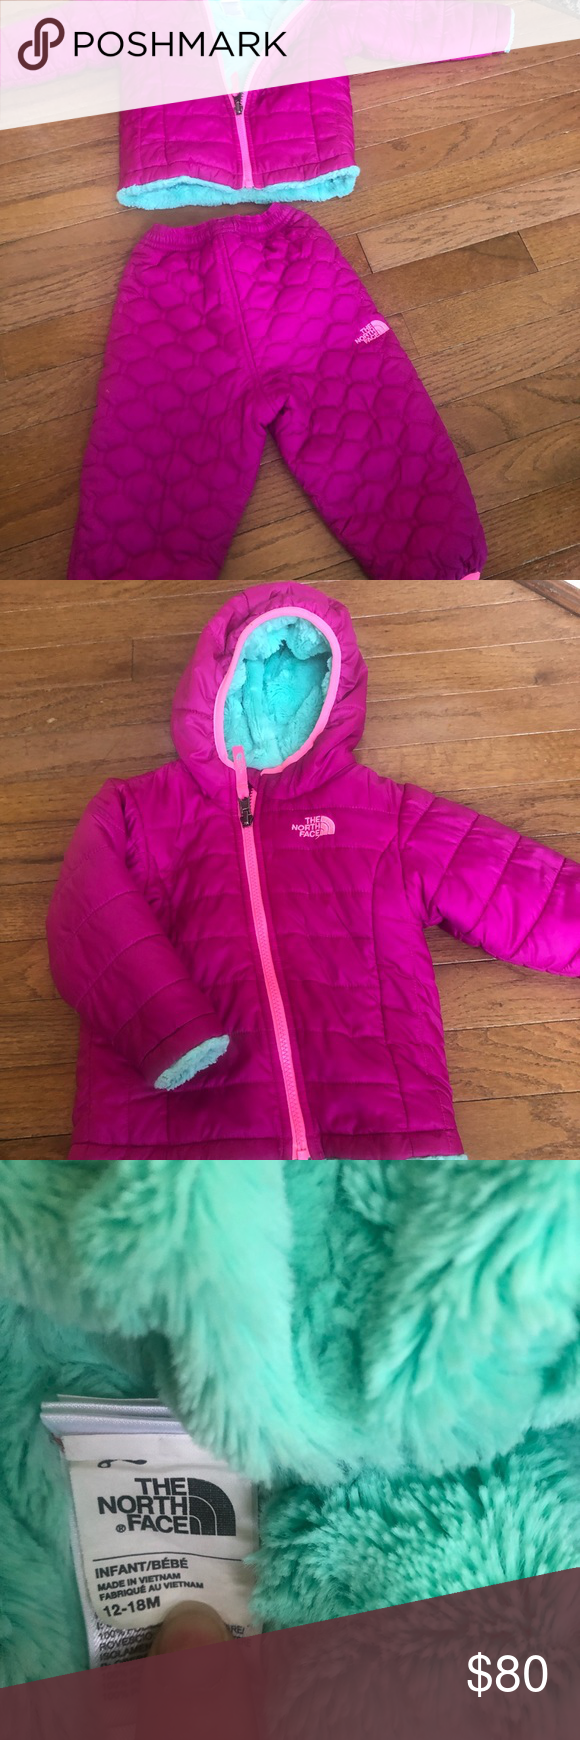 North Face Thermoball Set Great Condition Very Gently Used Toddler North Face Coat And Matching Winter Pants North Face Coat Winter Pants North Face Jacket [ 1740 x 580 Pixel ]